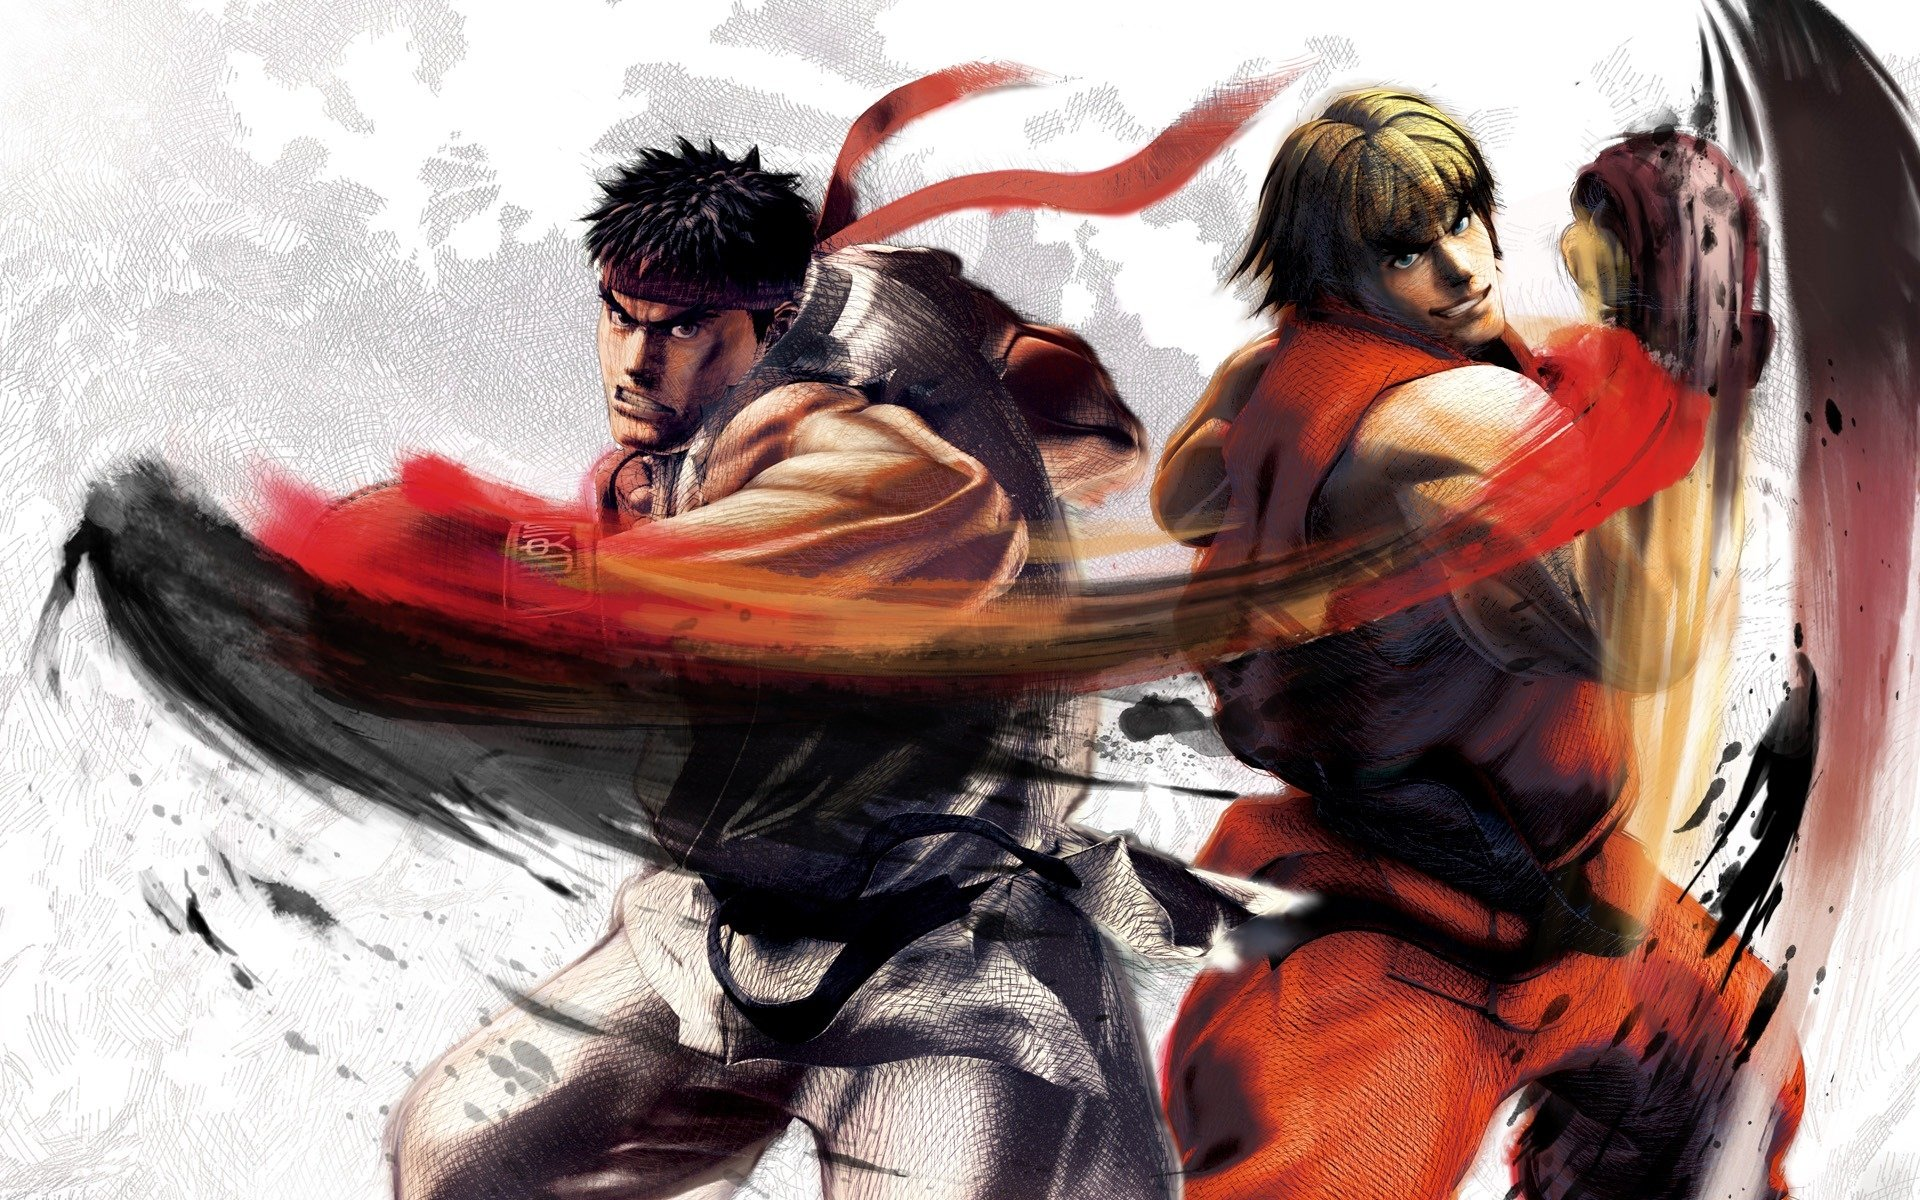 ryu and ken full hd wallpaper and background image | 1920x1200 | id